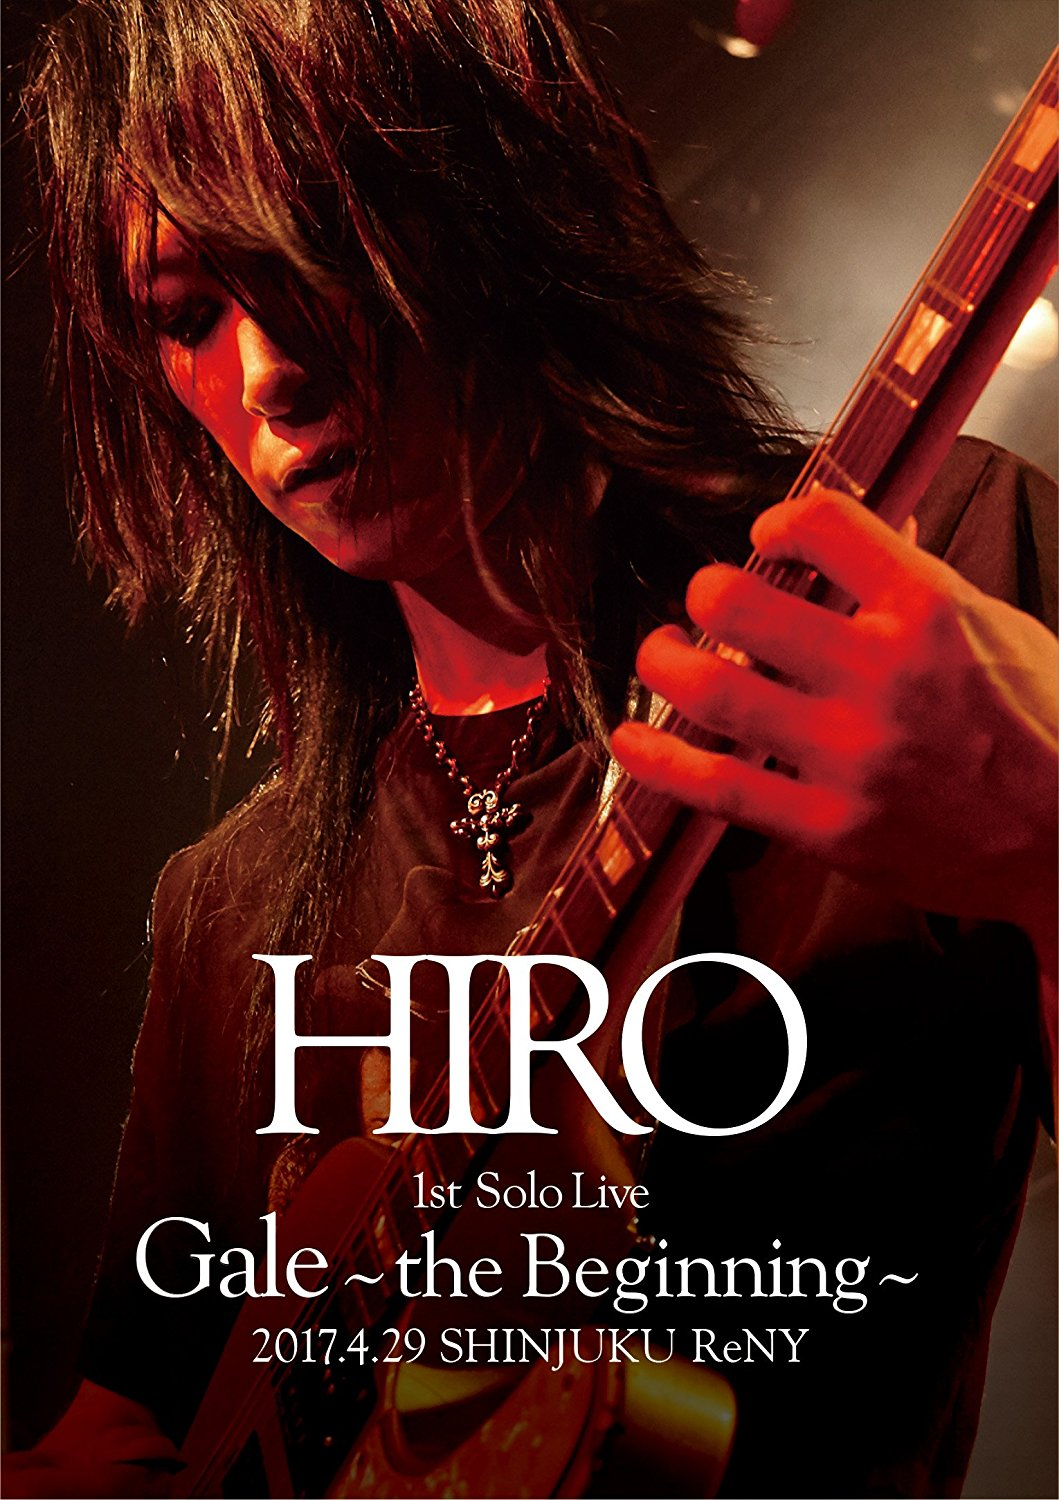 HIRO の CD 【初回Blu-ray】HIRO 1st Solo Live 『Gale』~the Beginning~ 2017.4.29 SHINJUKU ReNY